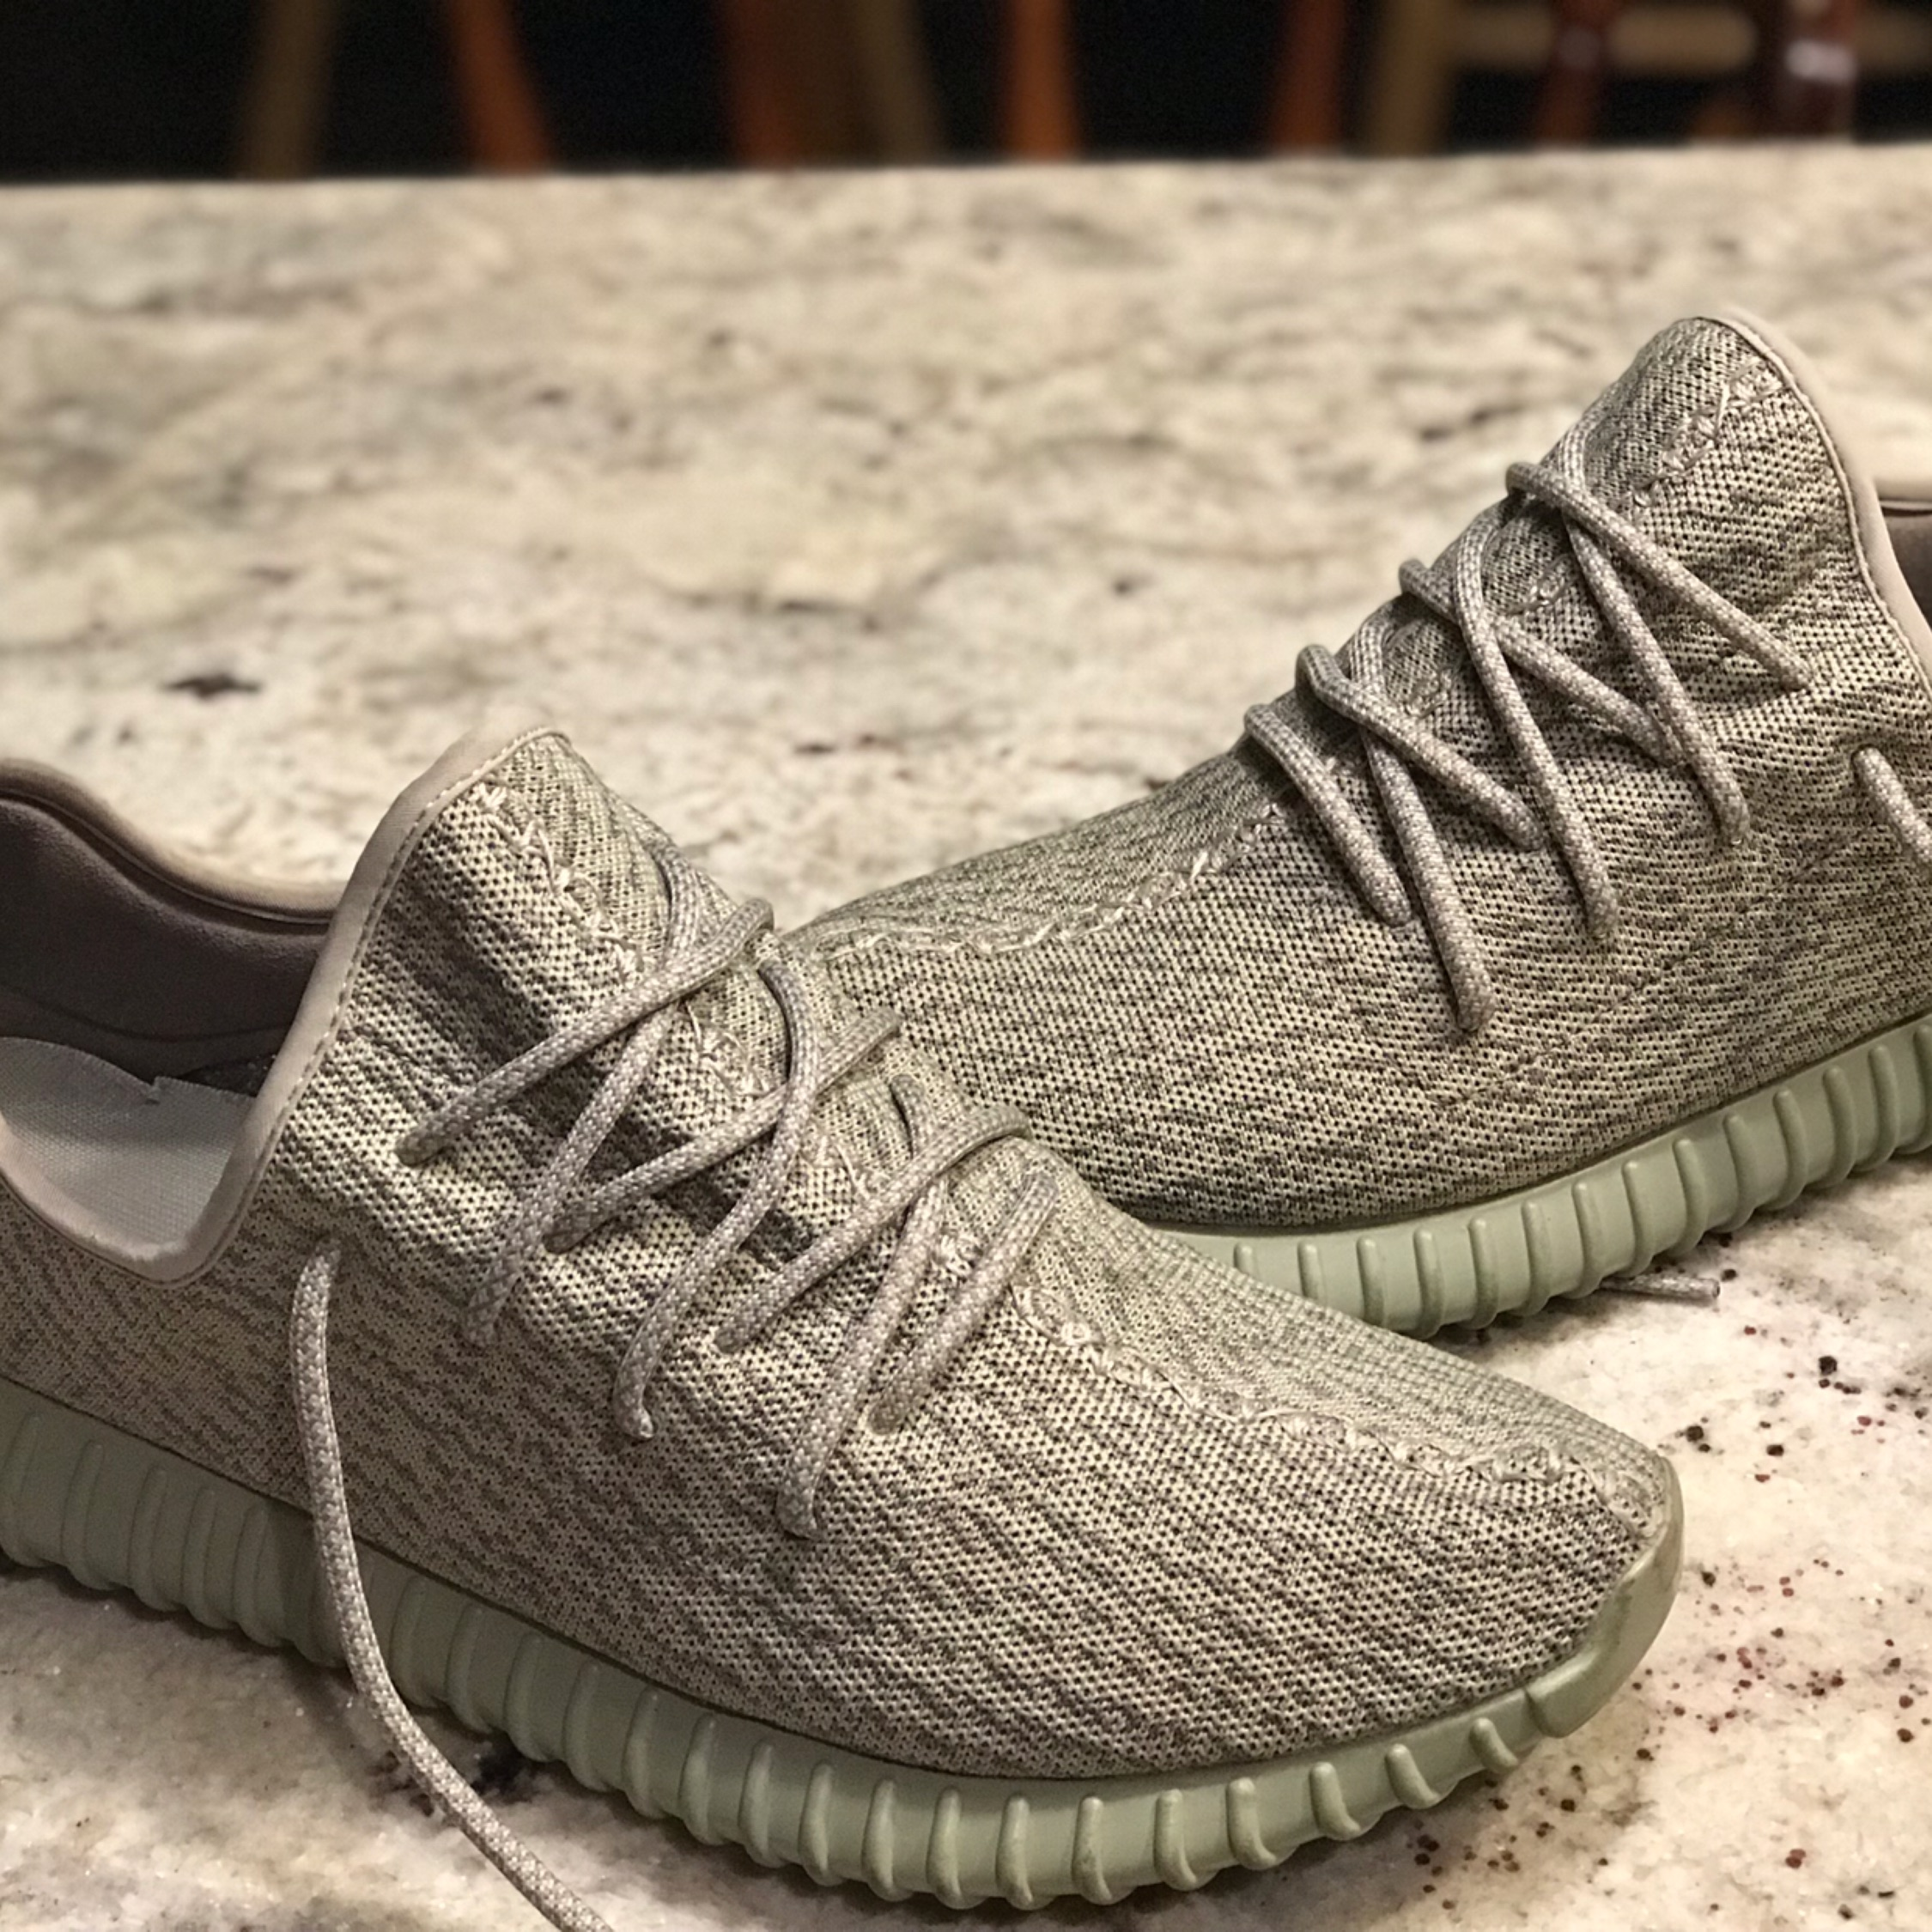 50% Off Yeezy boost 350 moonrock insole fake Light Stone